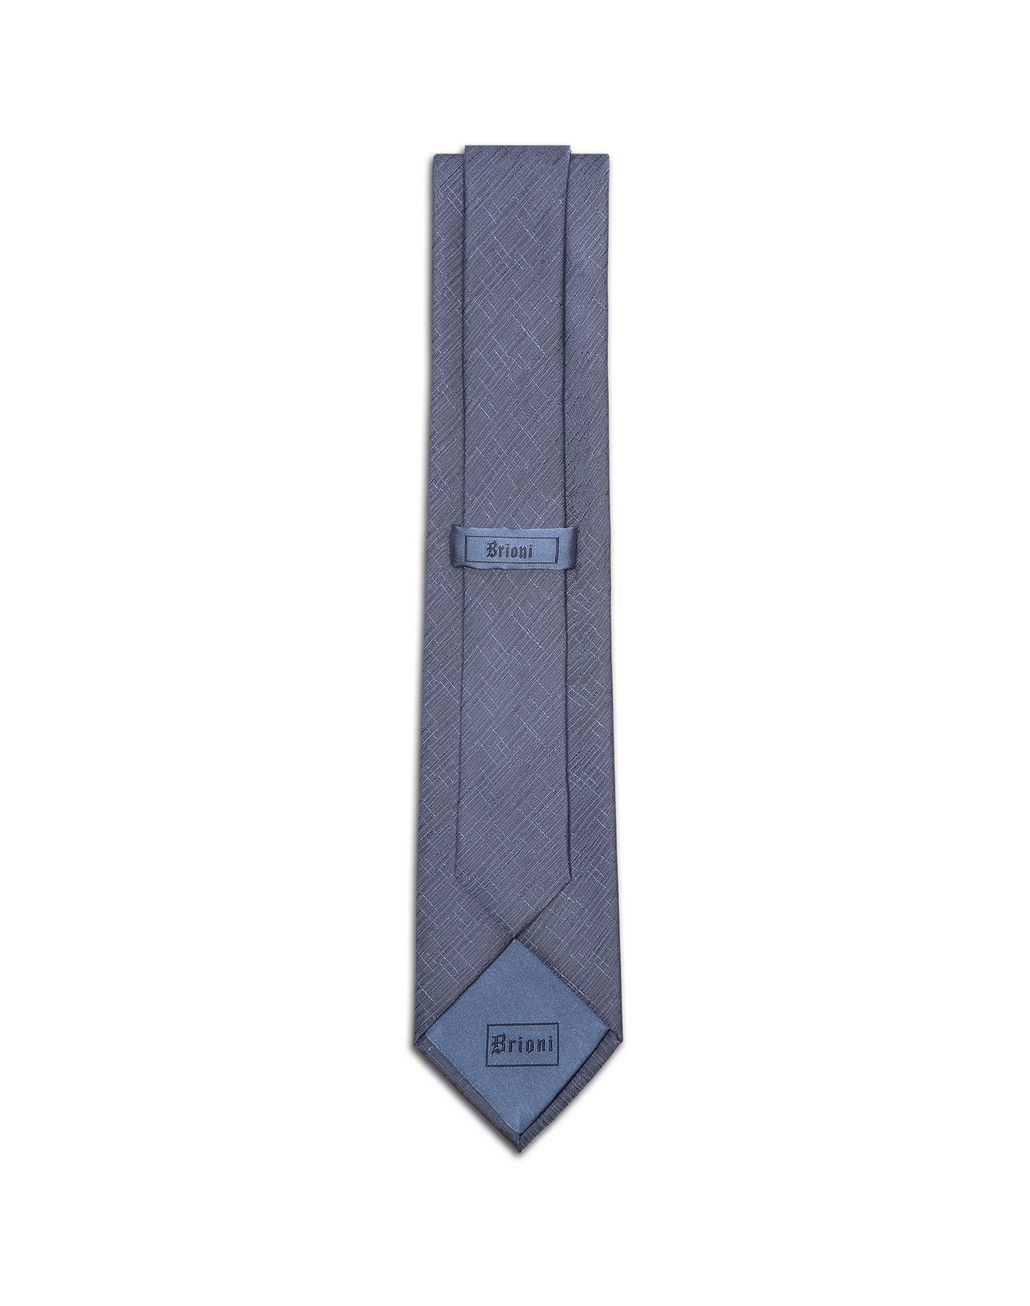 BRIONI Bluette Shantung Tie Tie & Pocket Square Man r